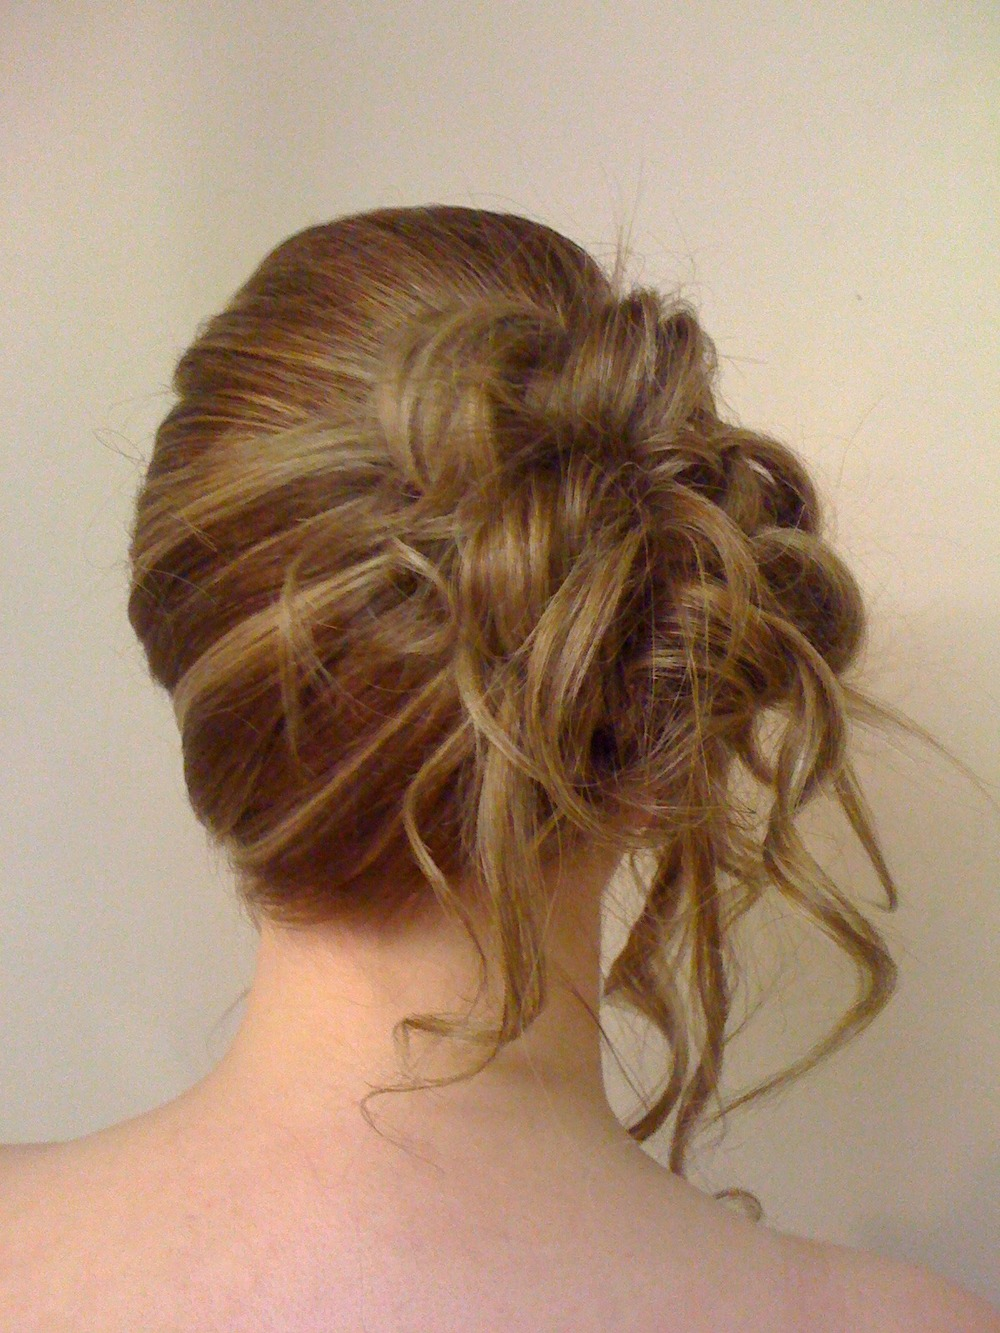 hair pics for website 2.jpg